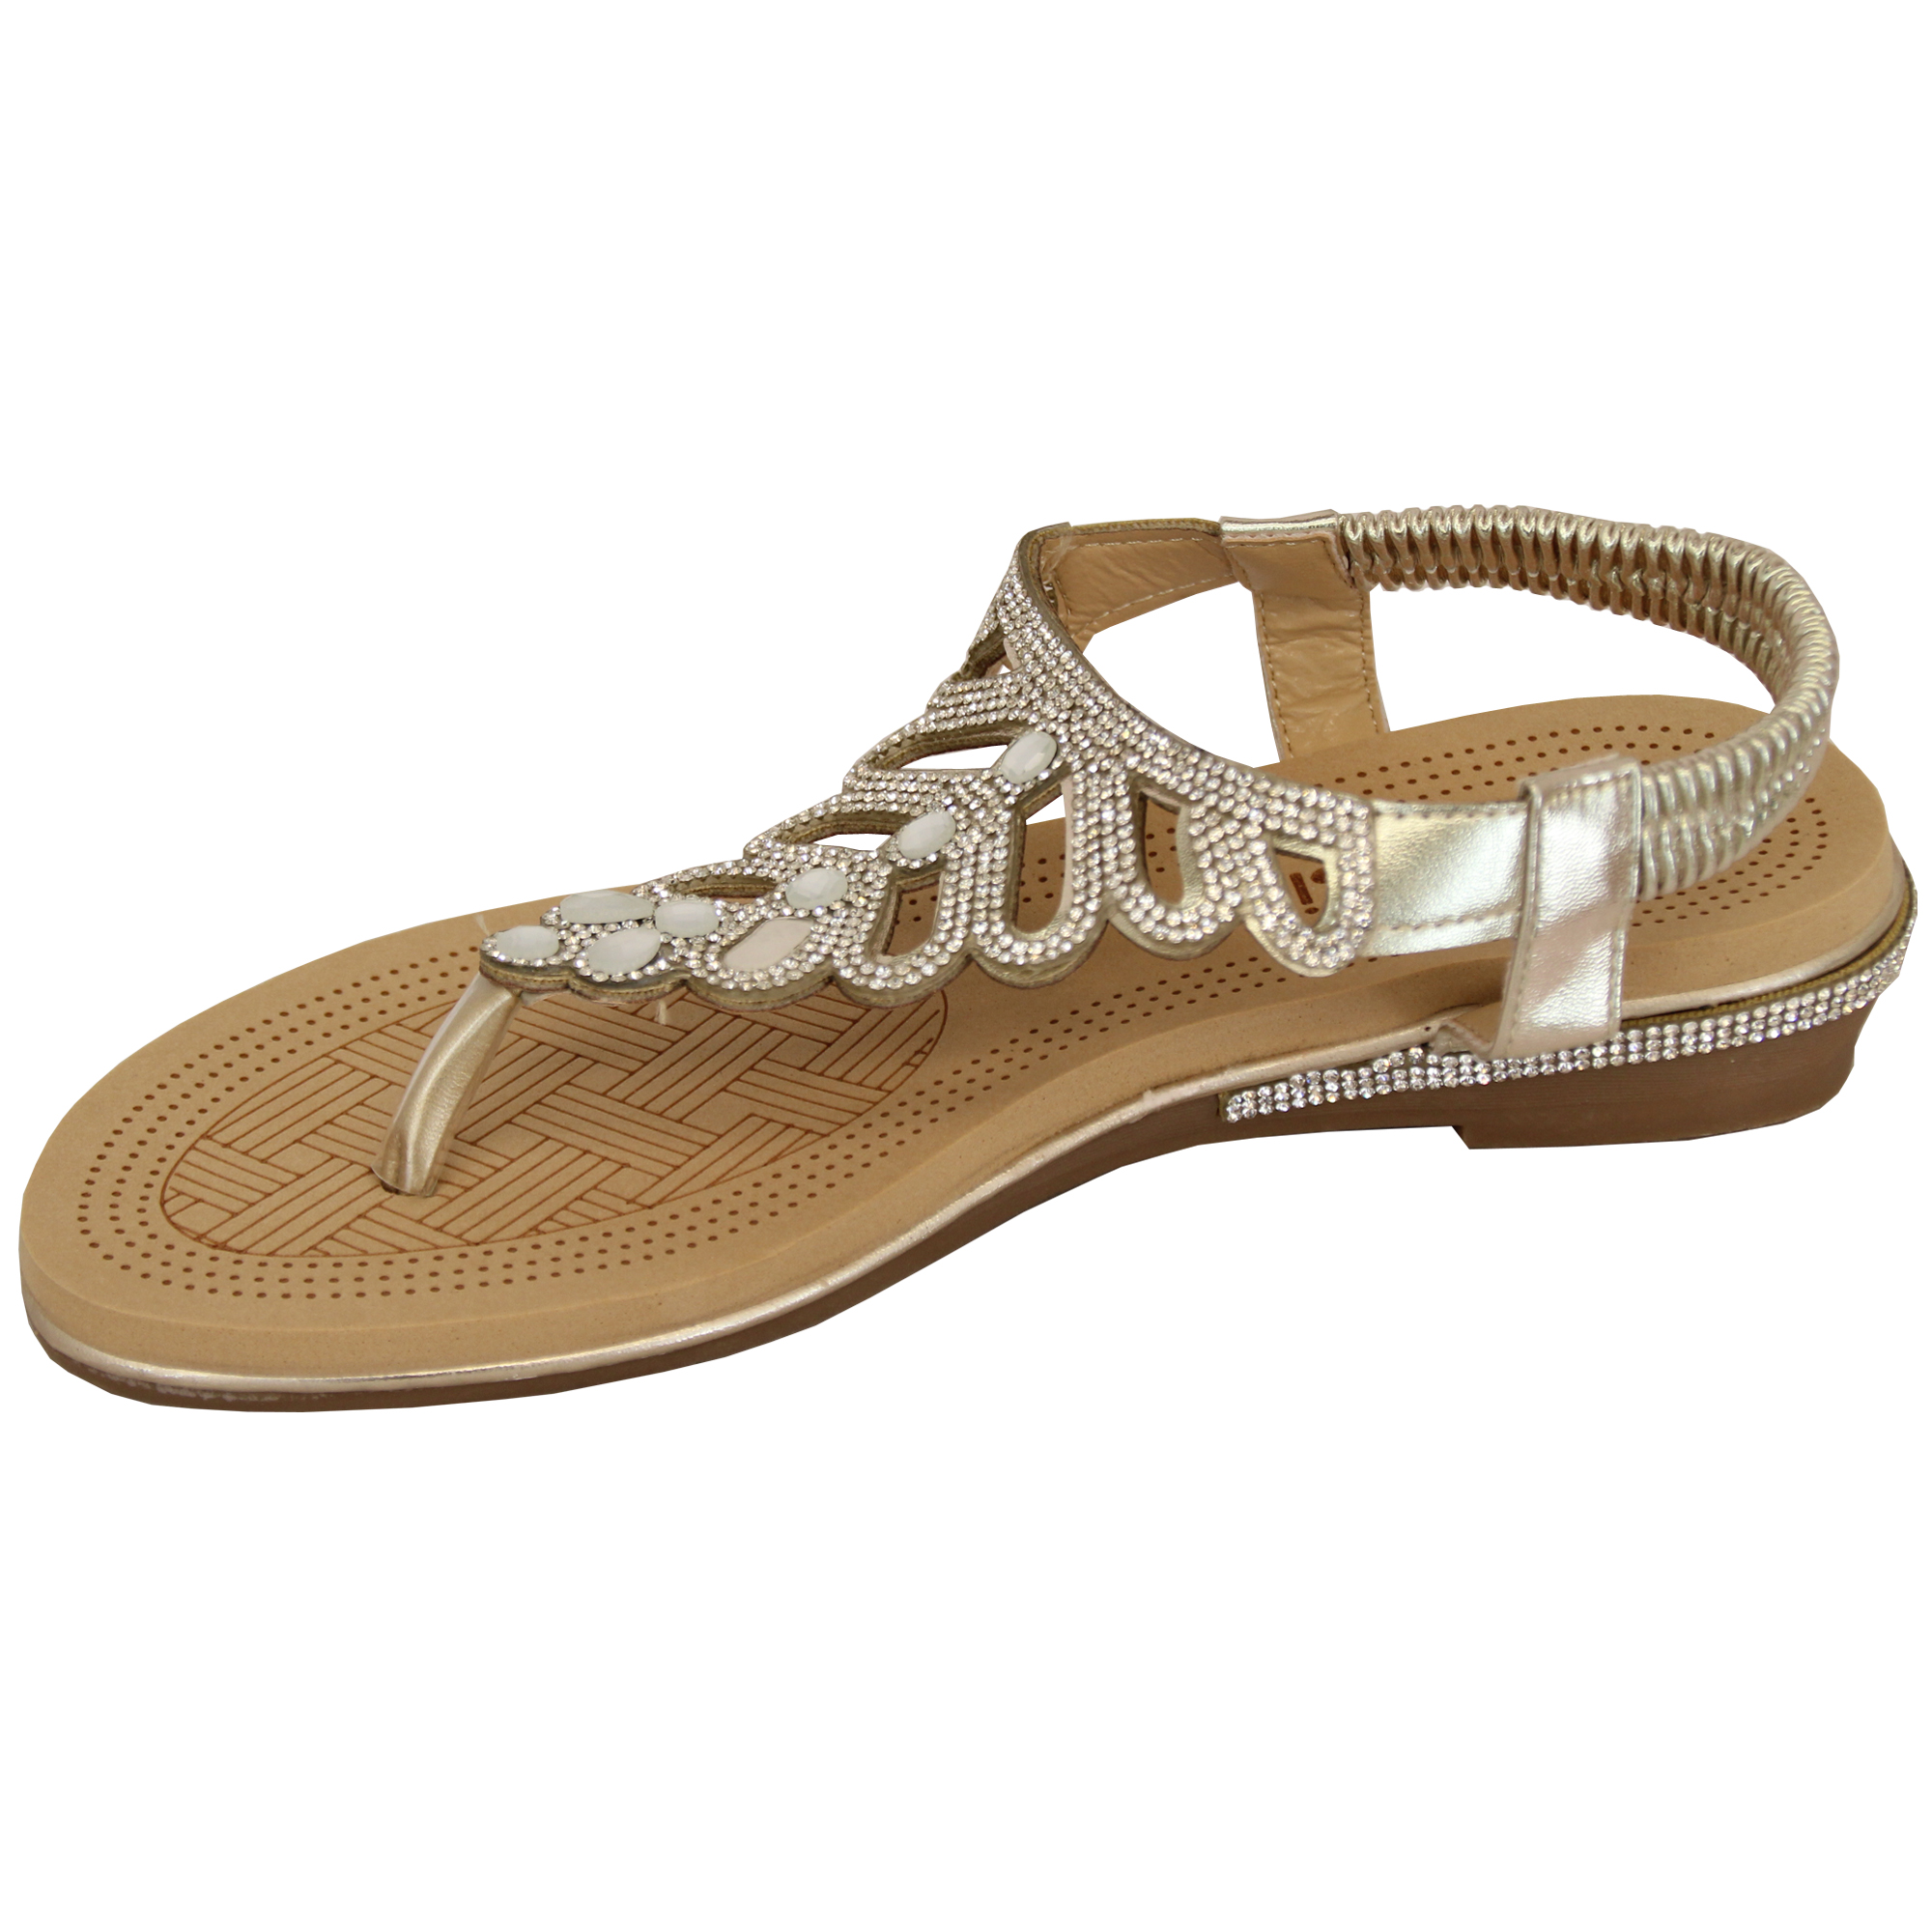 Ladies-Sandals-Kelsi-Womens-Diamante-Slip-On-Toe-Post-Shoes-Casual-Fashion-New thumbnail 22